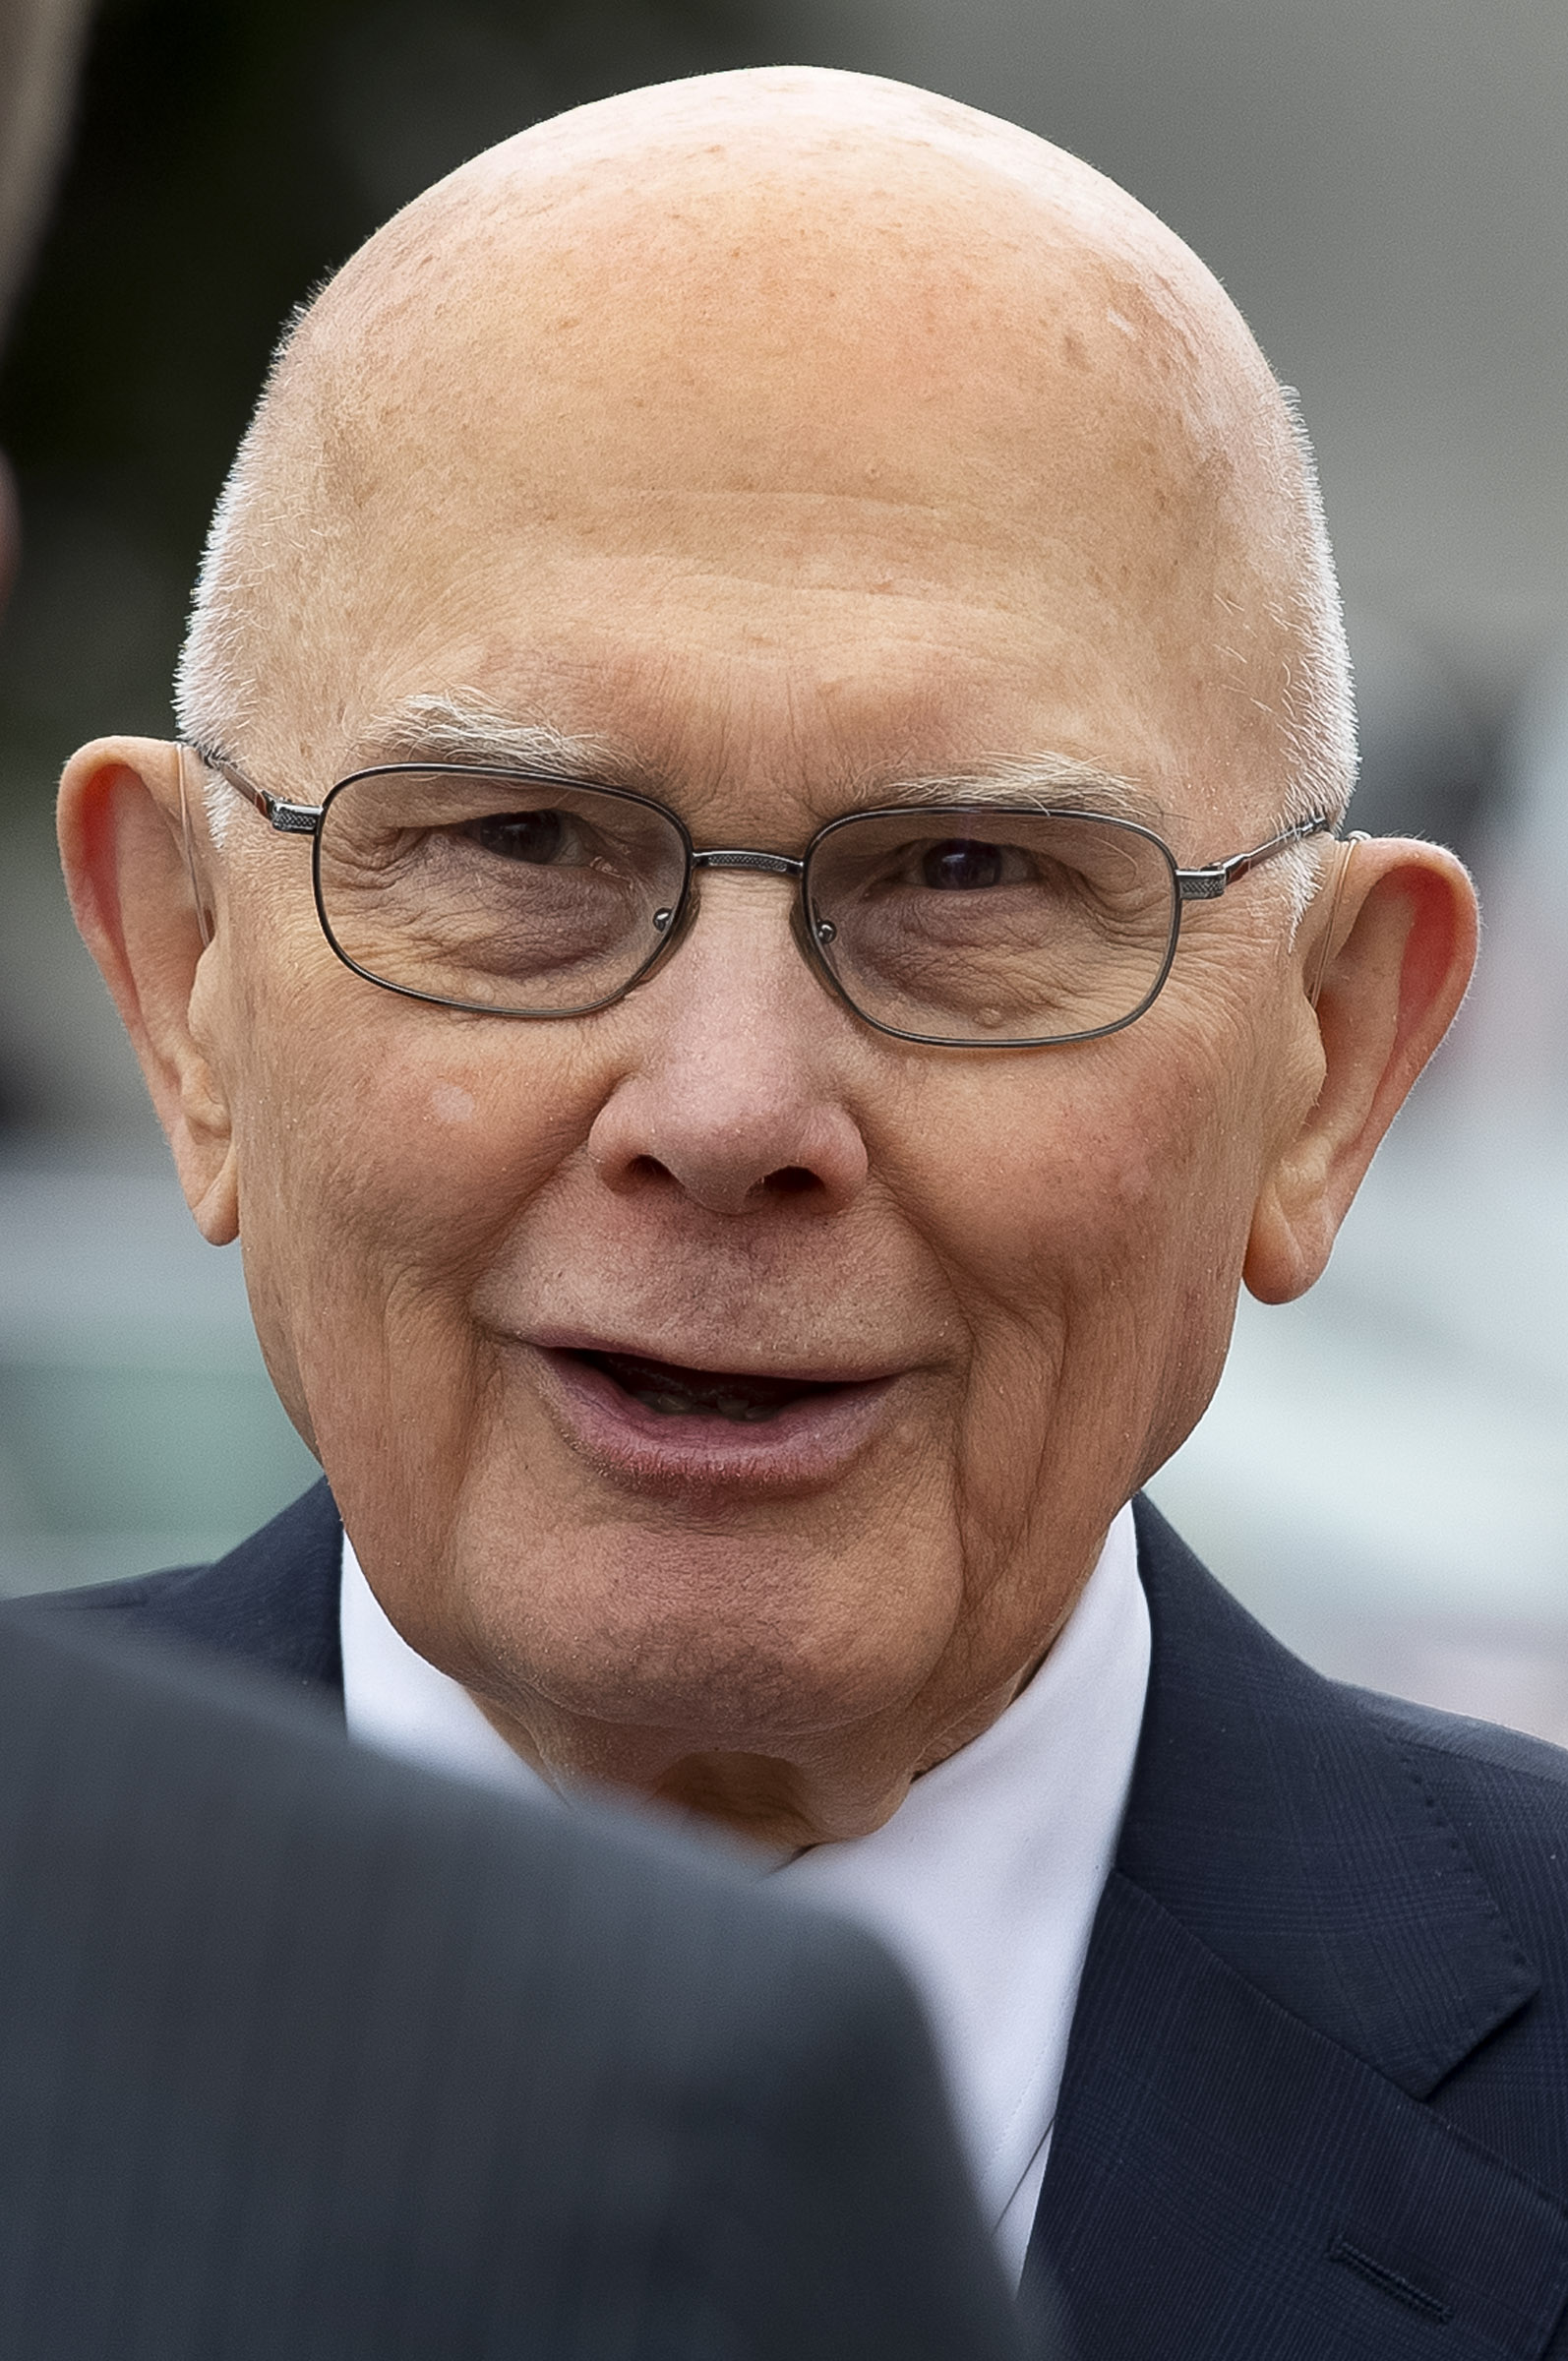 President Dallin H. Oaks, first counselor in the First Presidency, talks about the beauty of the Oakland California Temple following a walk-through on Saturday, June 15, 2019.